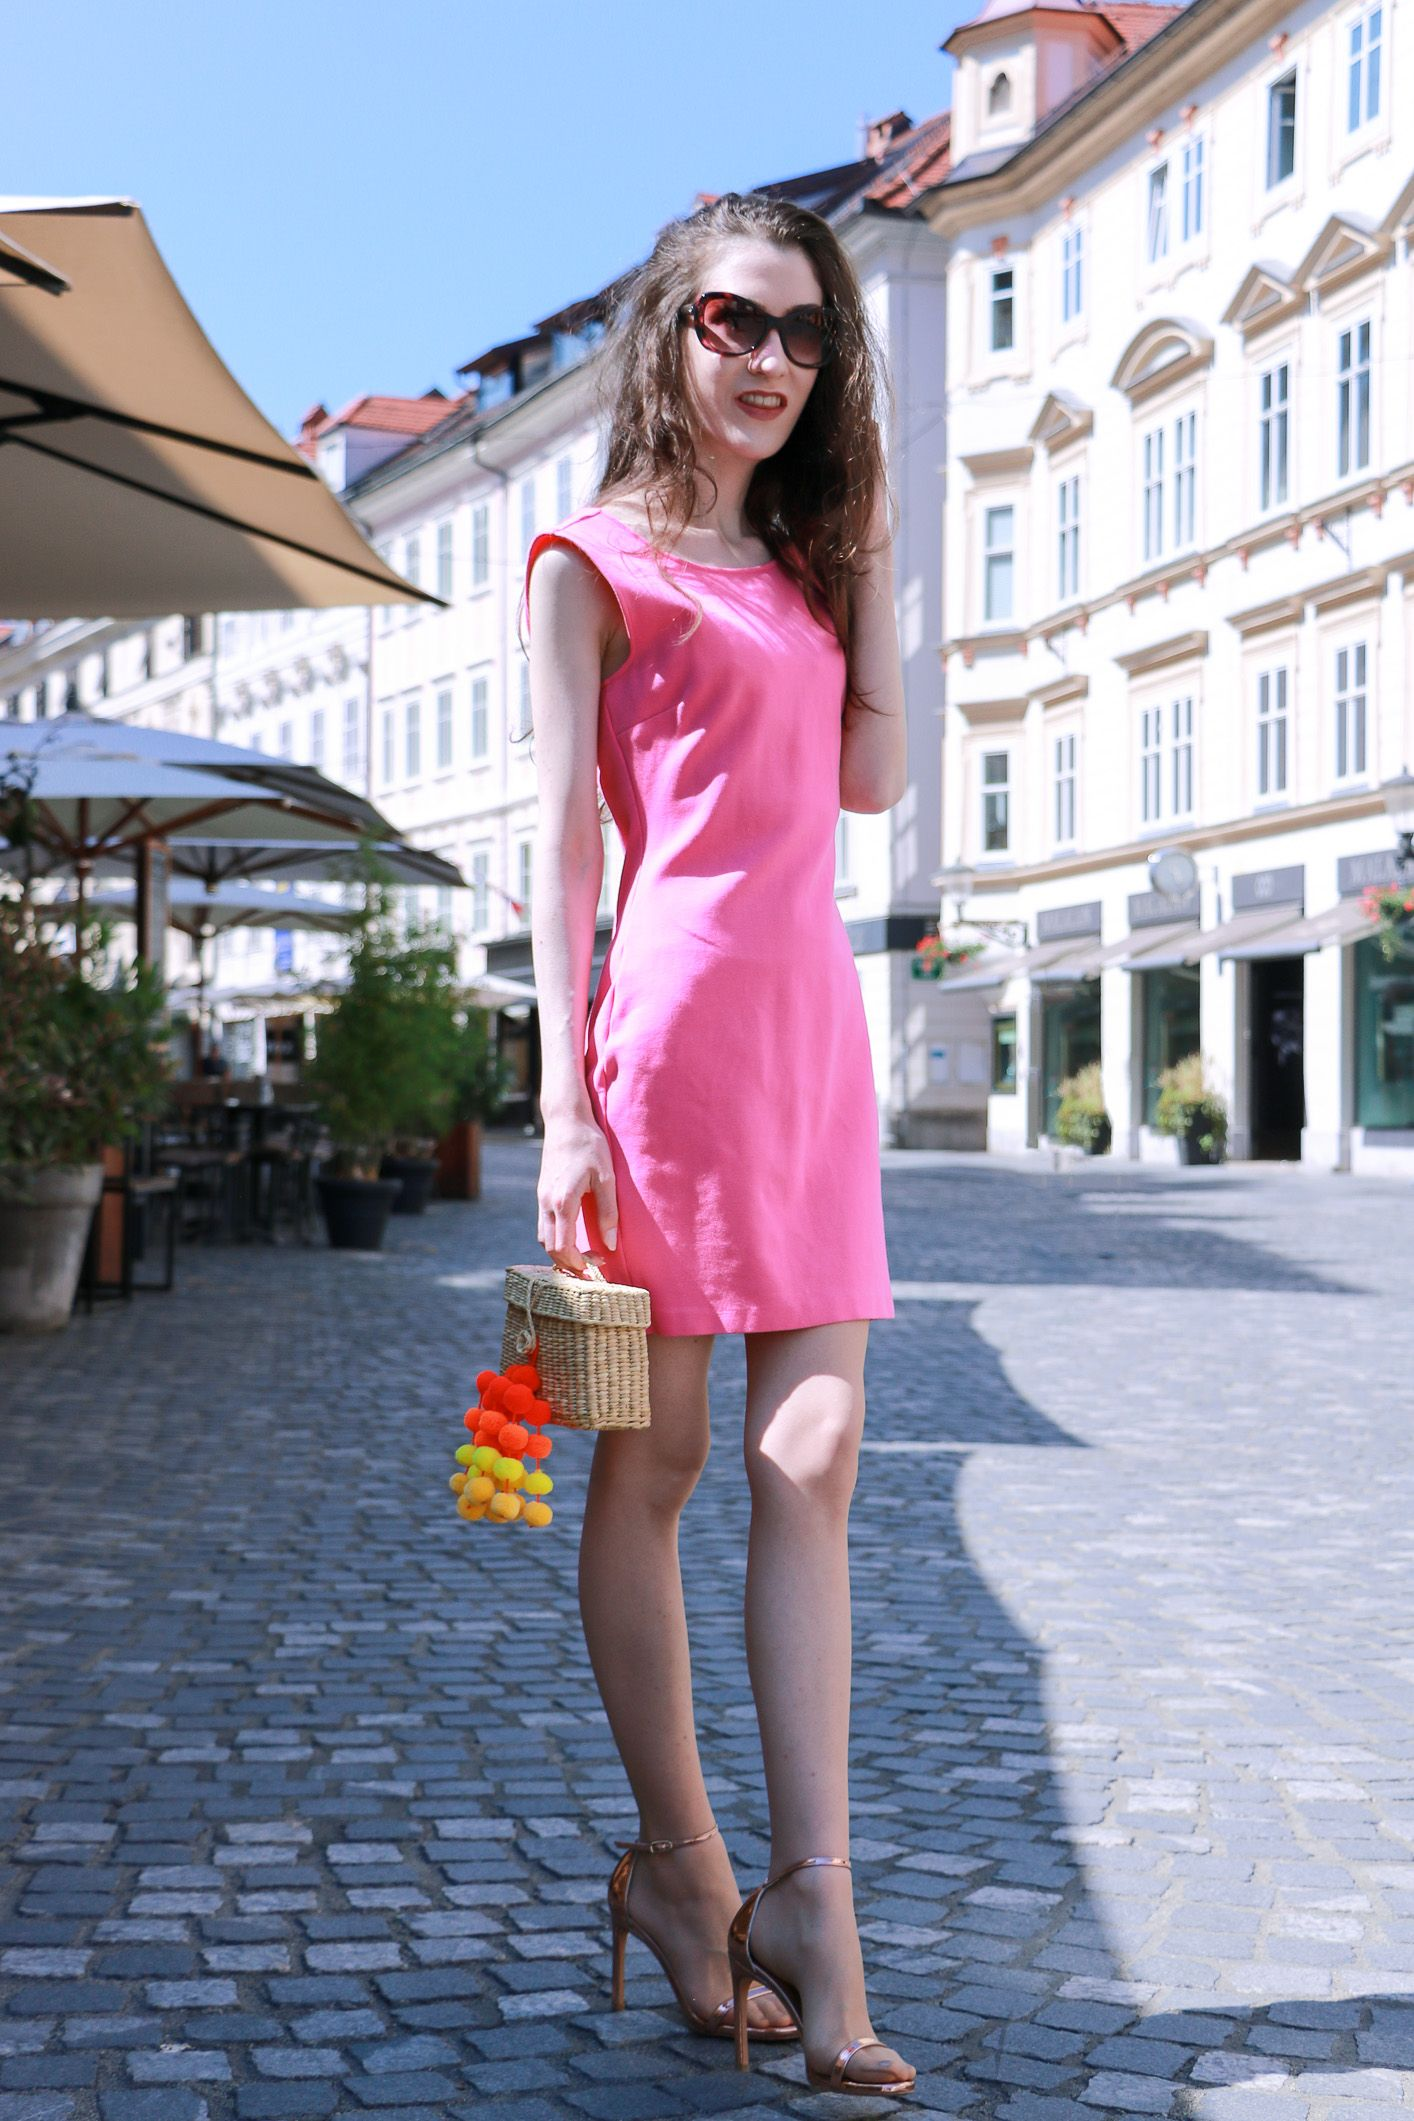 b8b53961cd10 Fashion blogger Veronika Lipar of Brunette From Wall Street sharing how to  wear head to toe pink outfit this summer